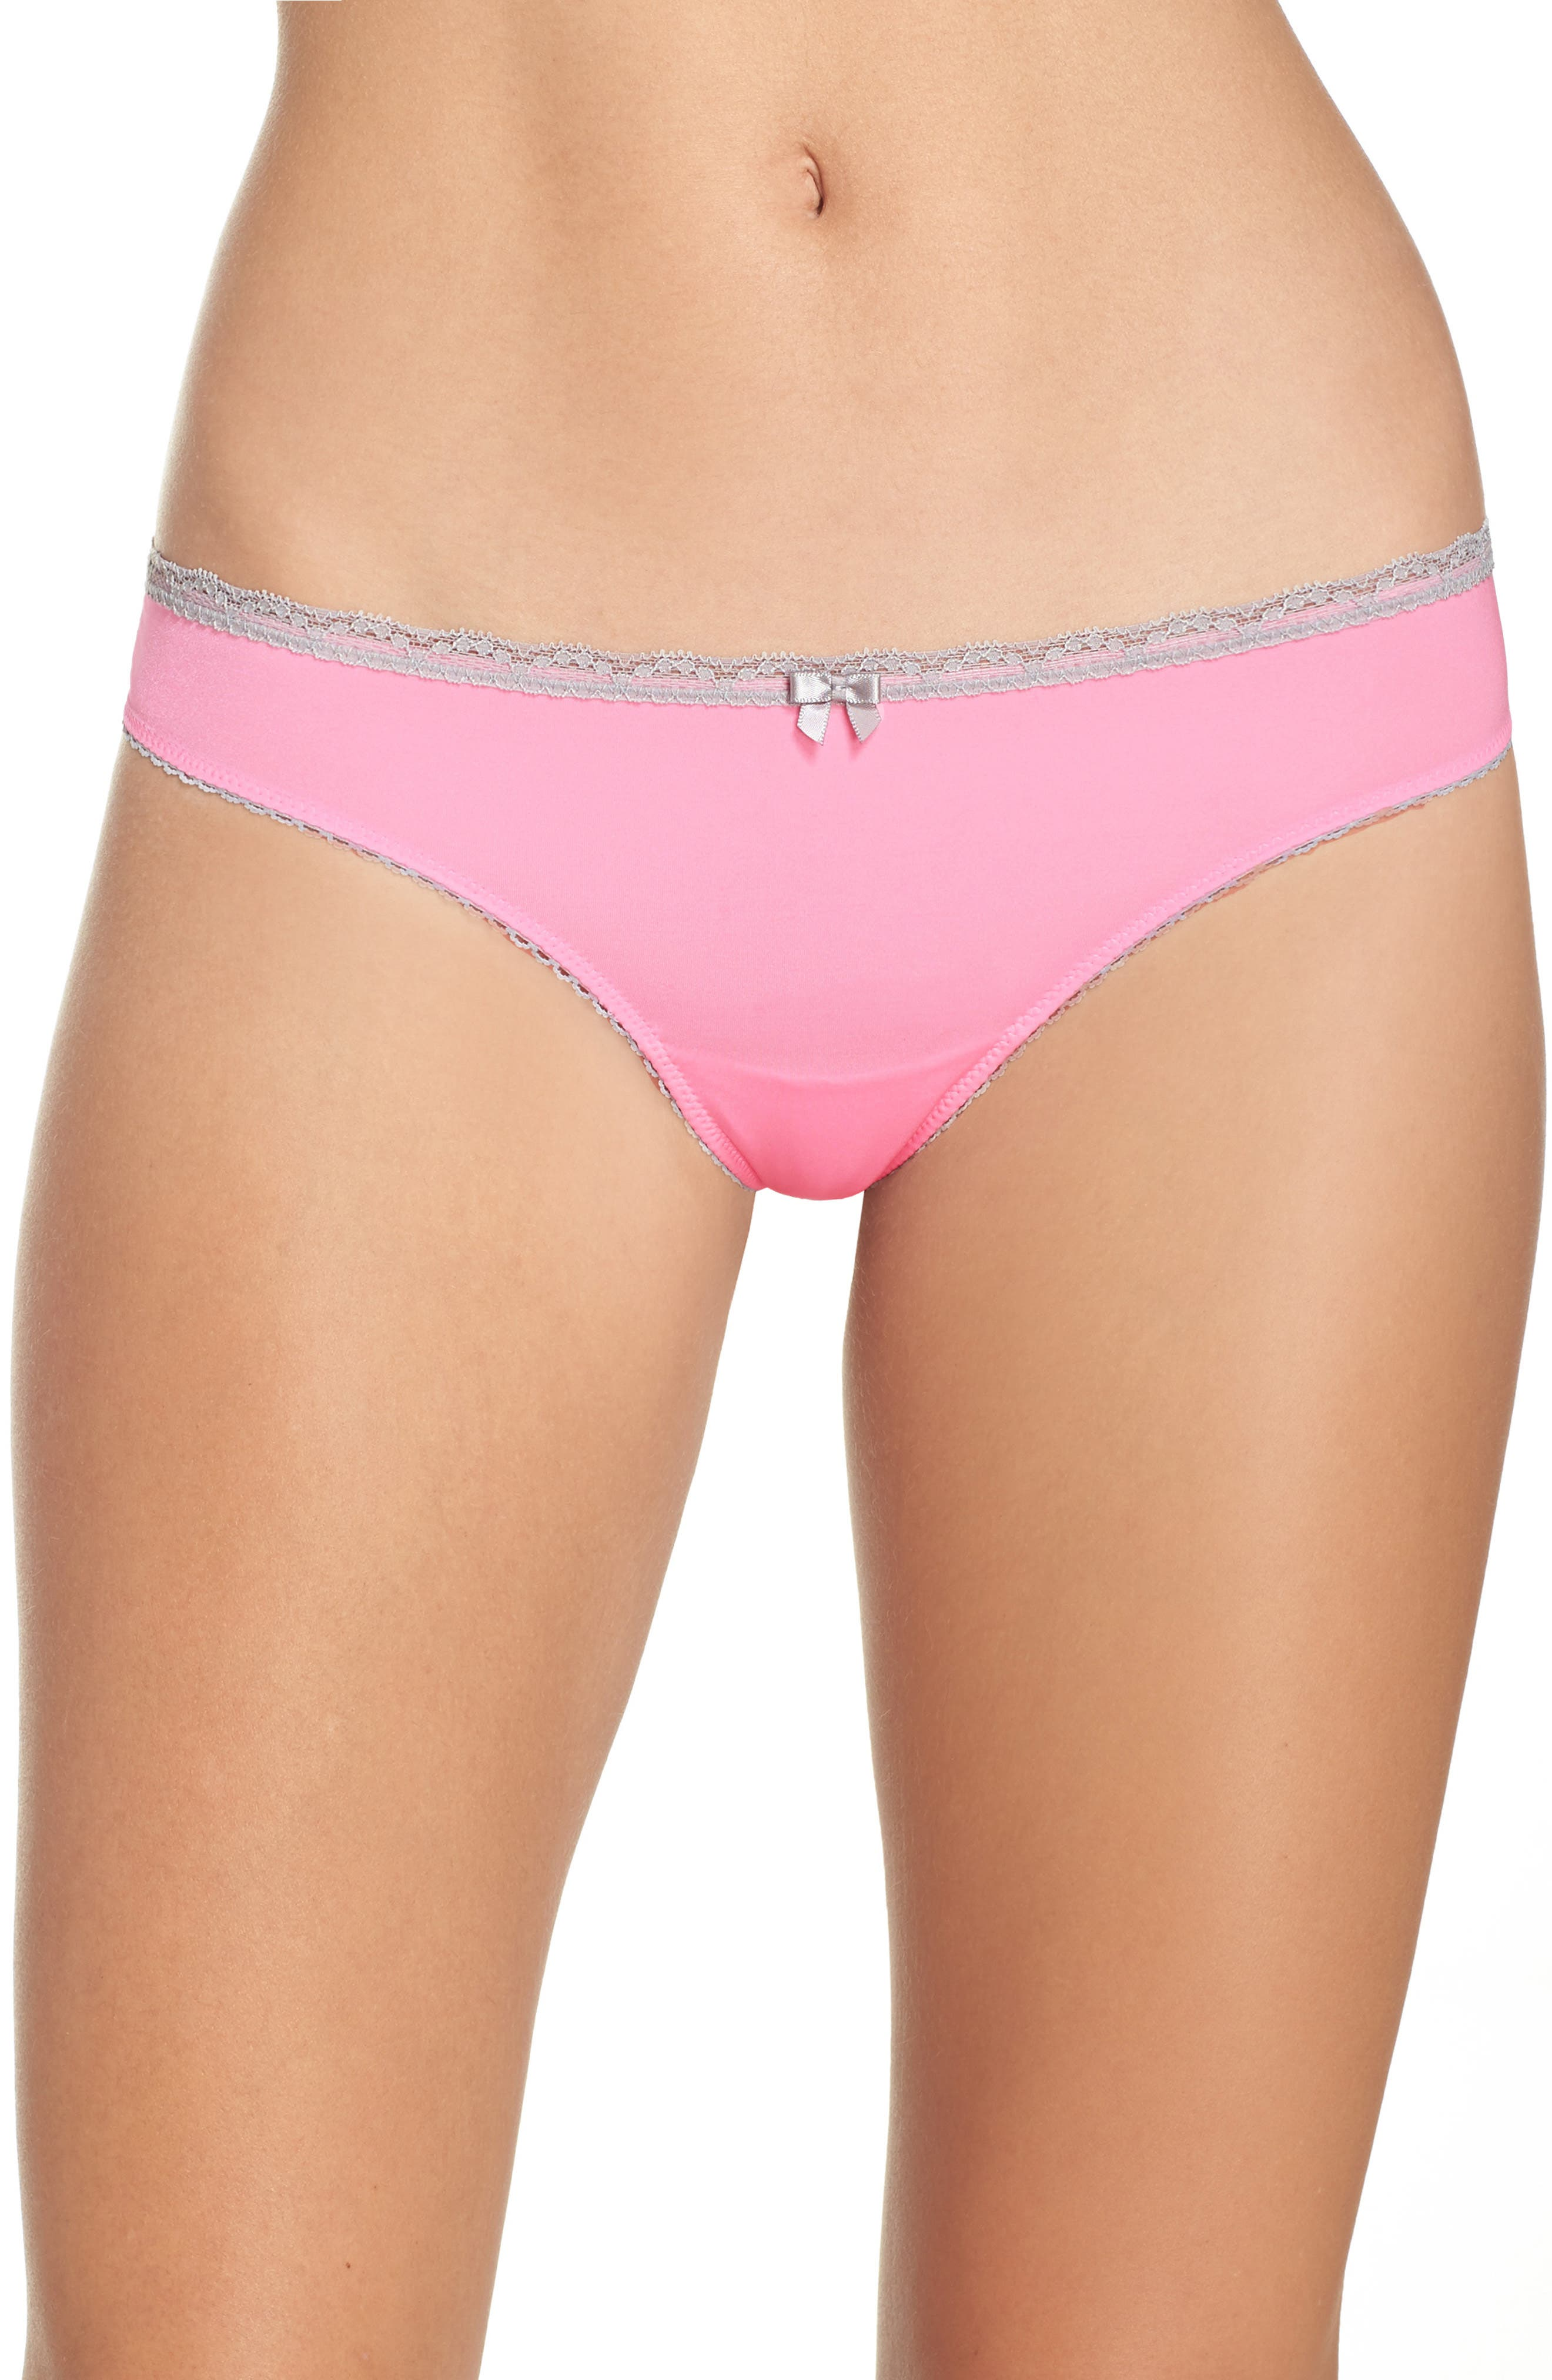 Betsey Johnson Perfectly Sexy Thong (3 for $33)